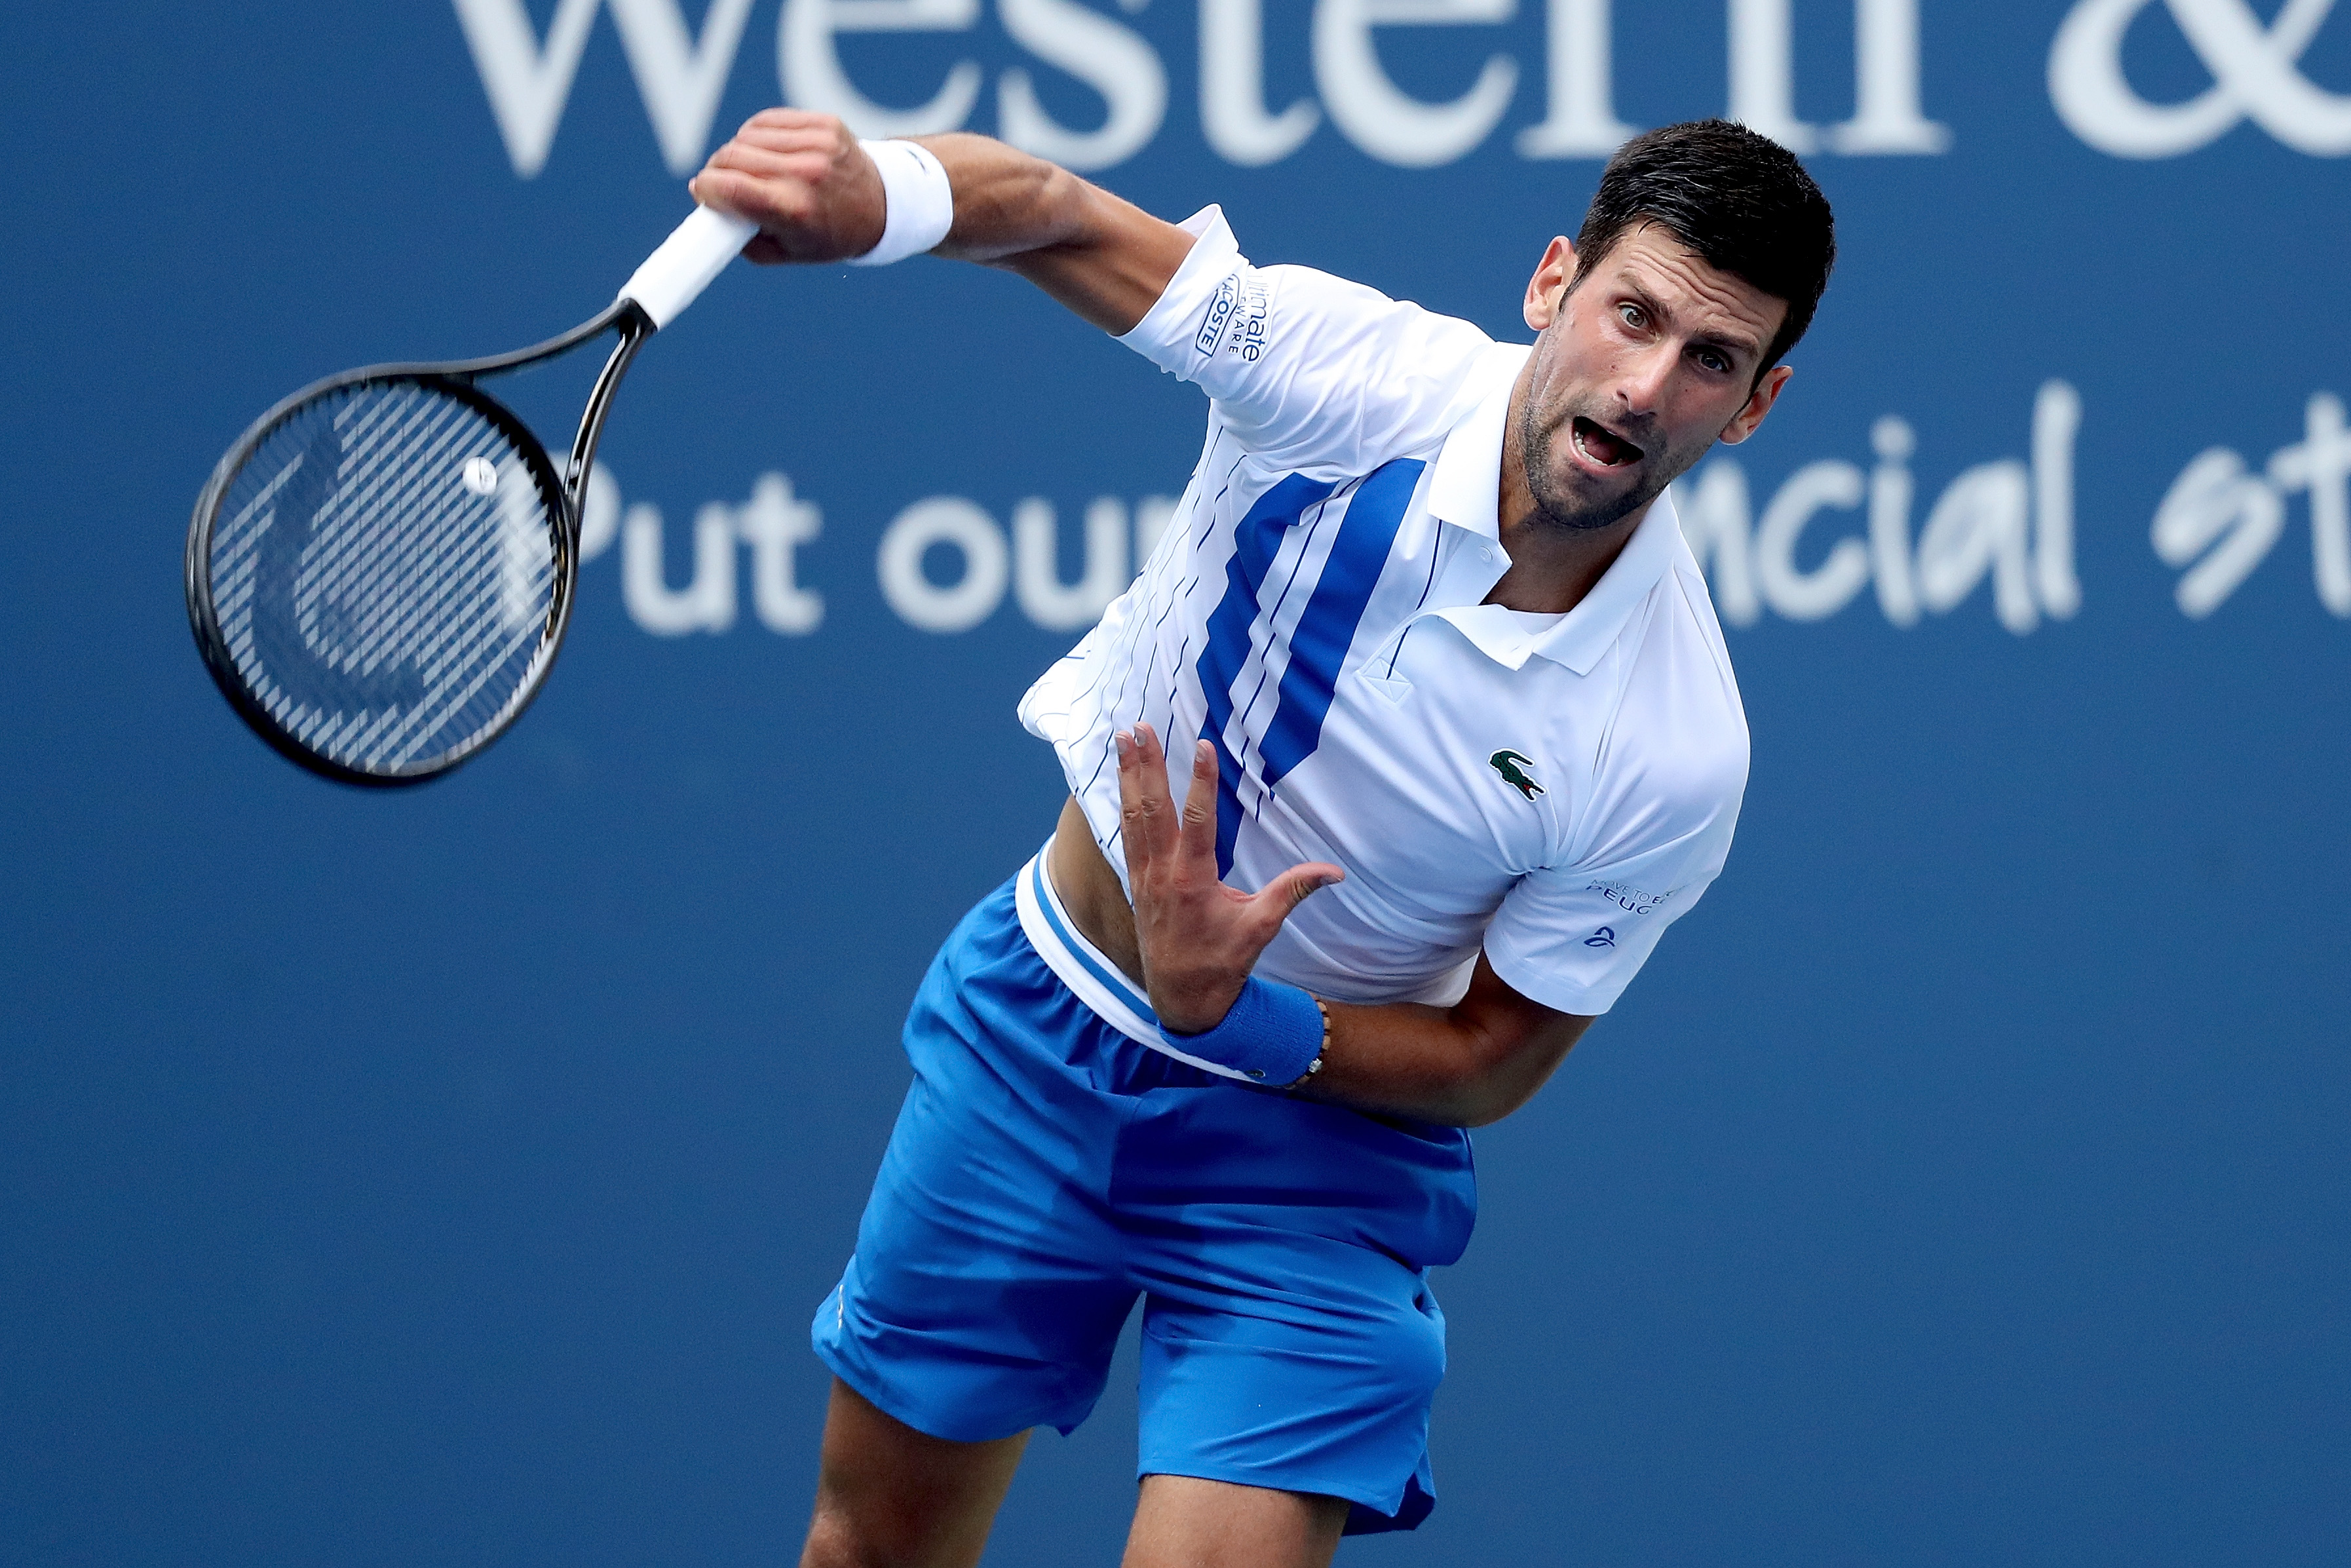 Novak Djokovic And Other Pros Form Male Tennis Players Association Insidehook